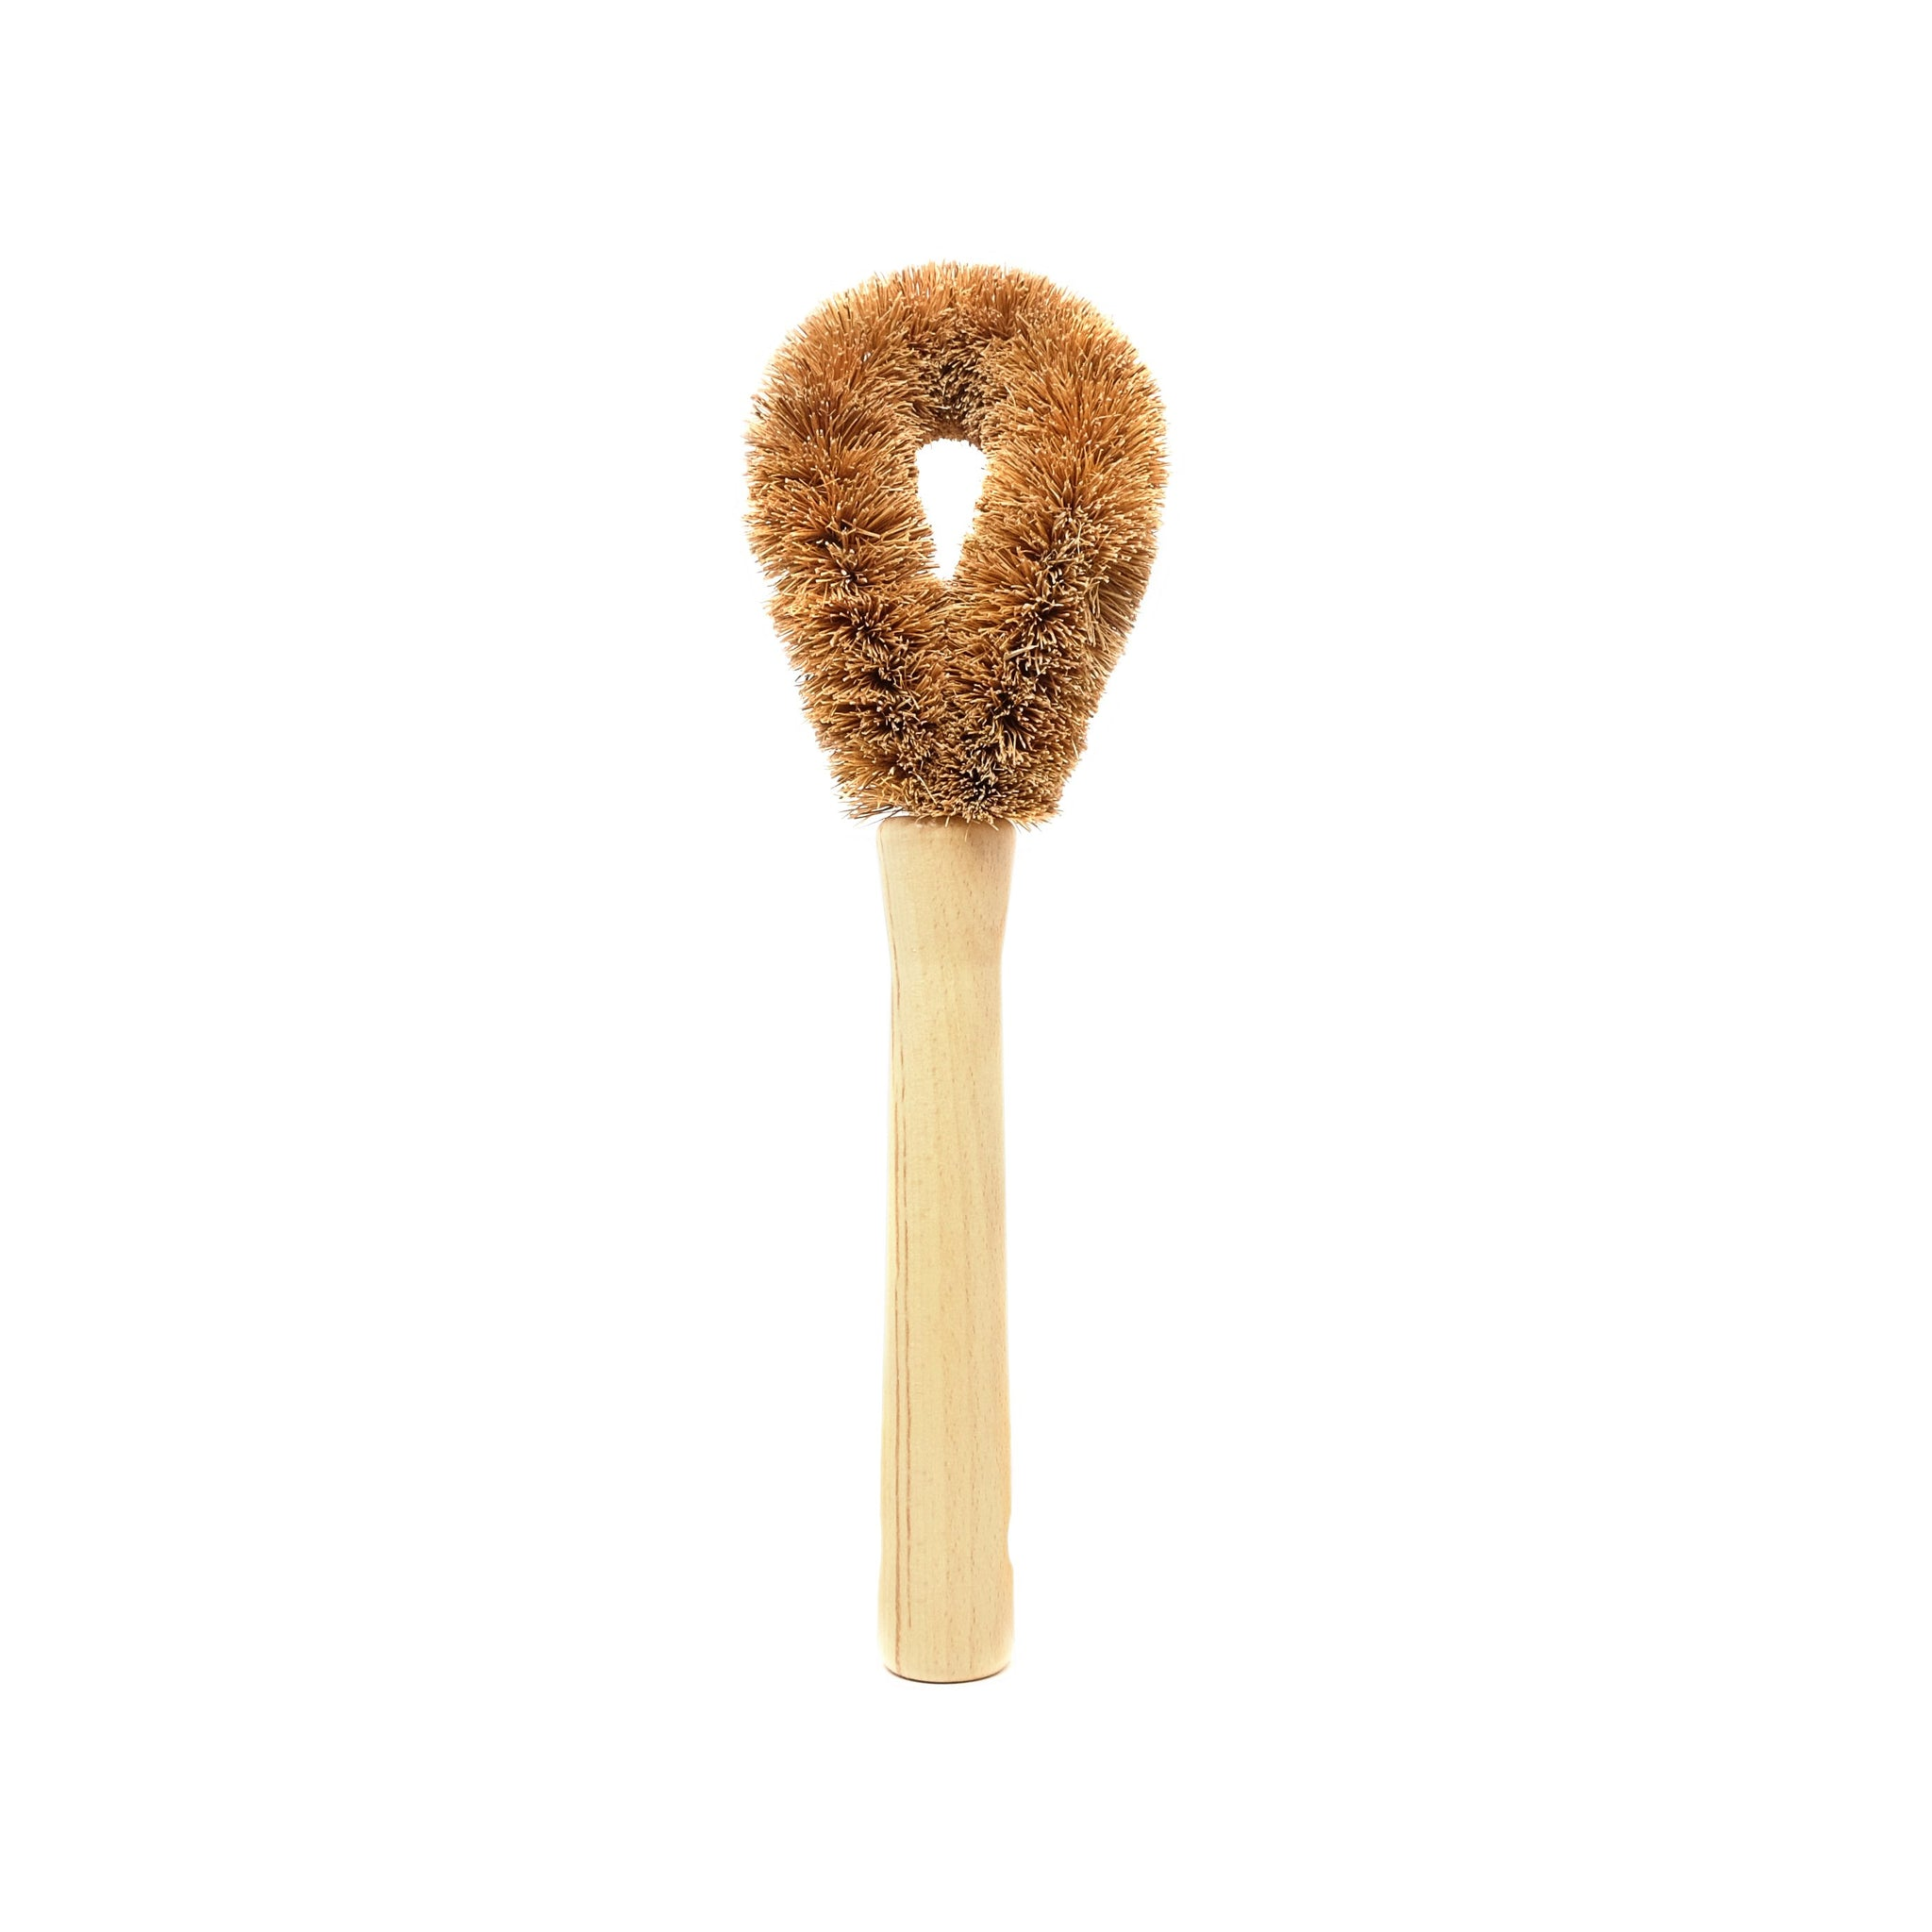 Maison Soleil - Package Free Scouring Brush